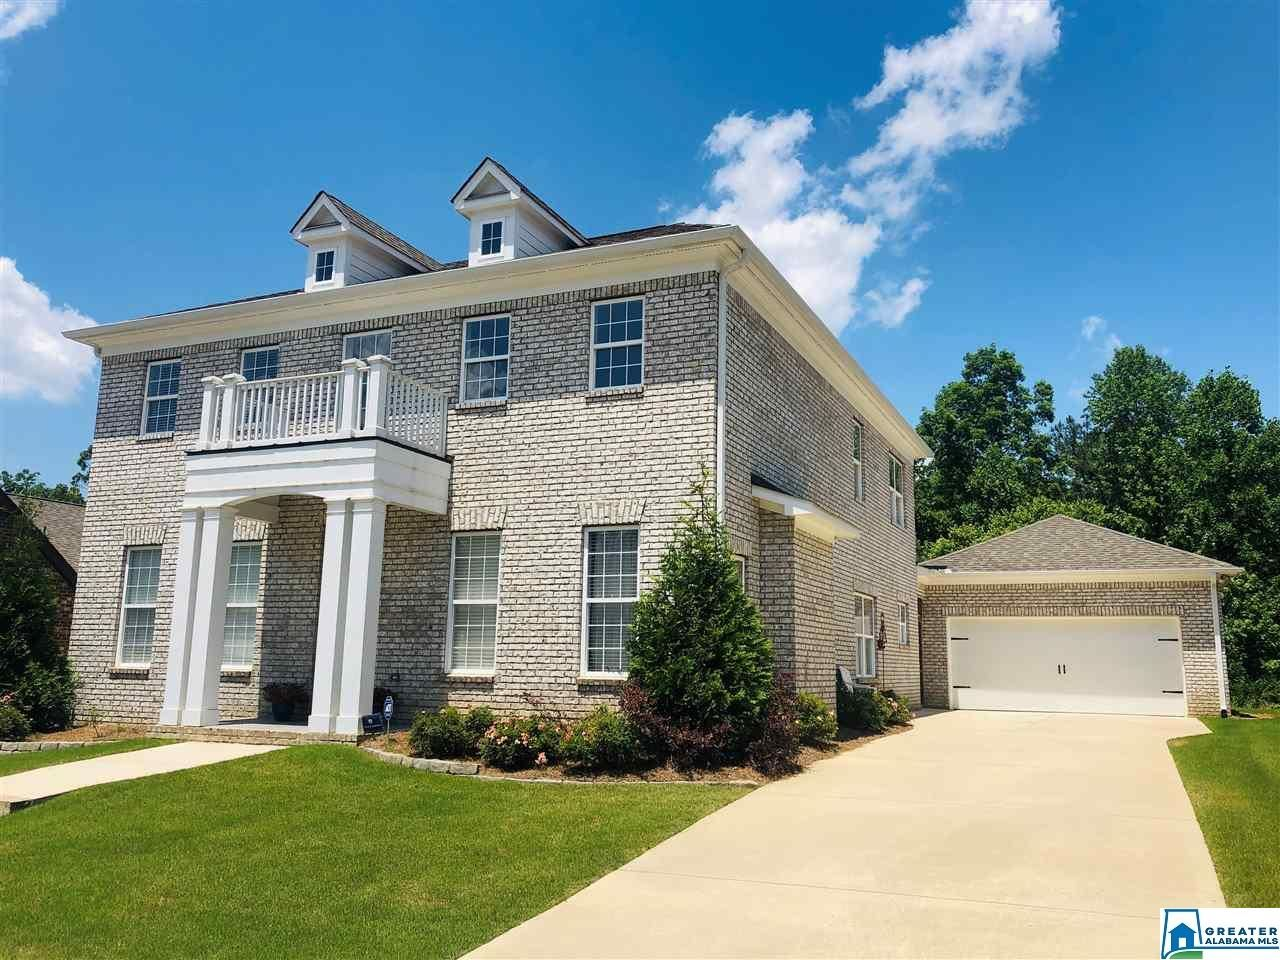 885 FIELDSTOWN CIR, Gardendale, AL 35071 - #: 870606